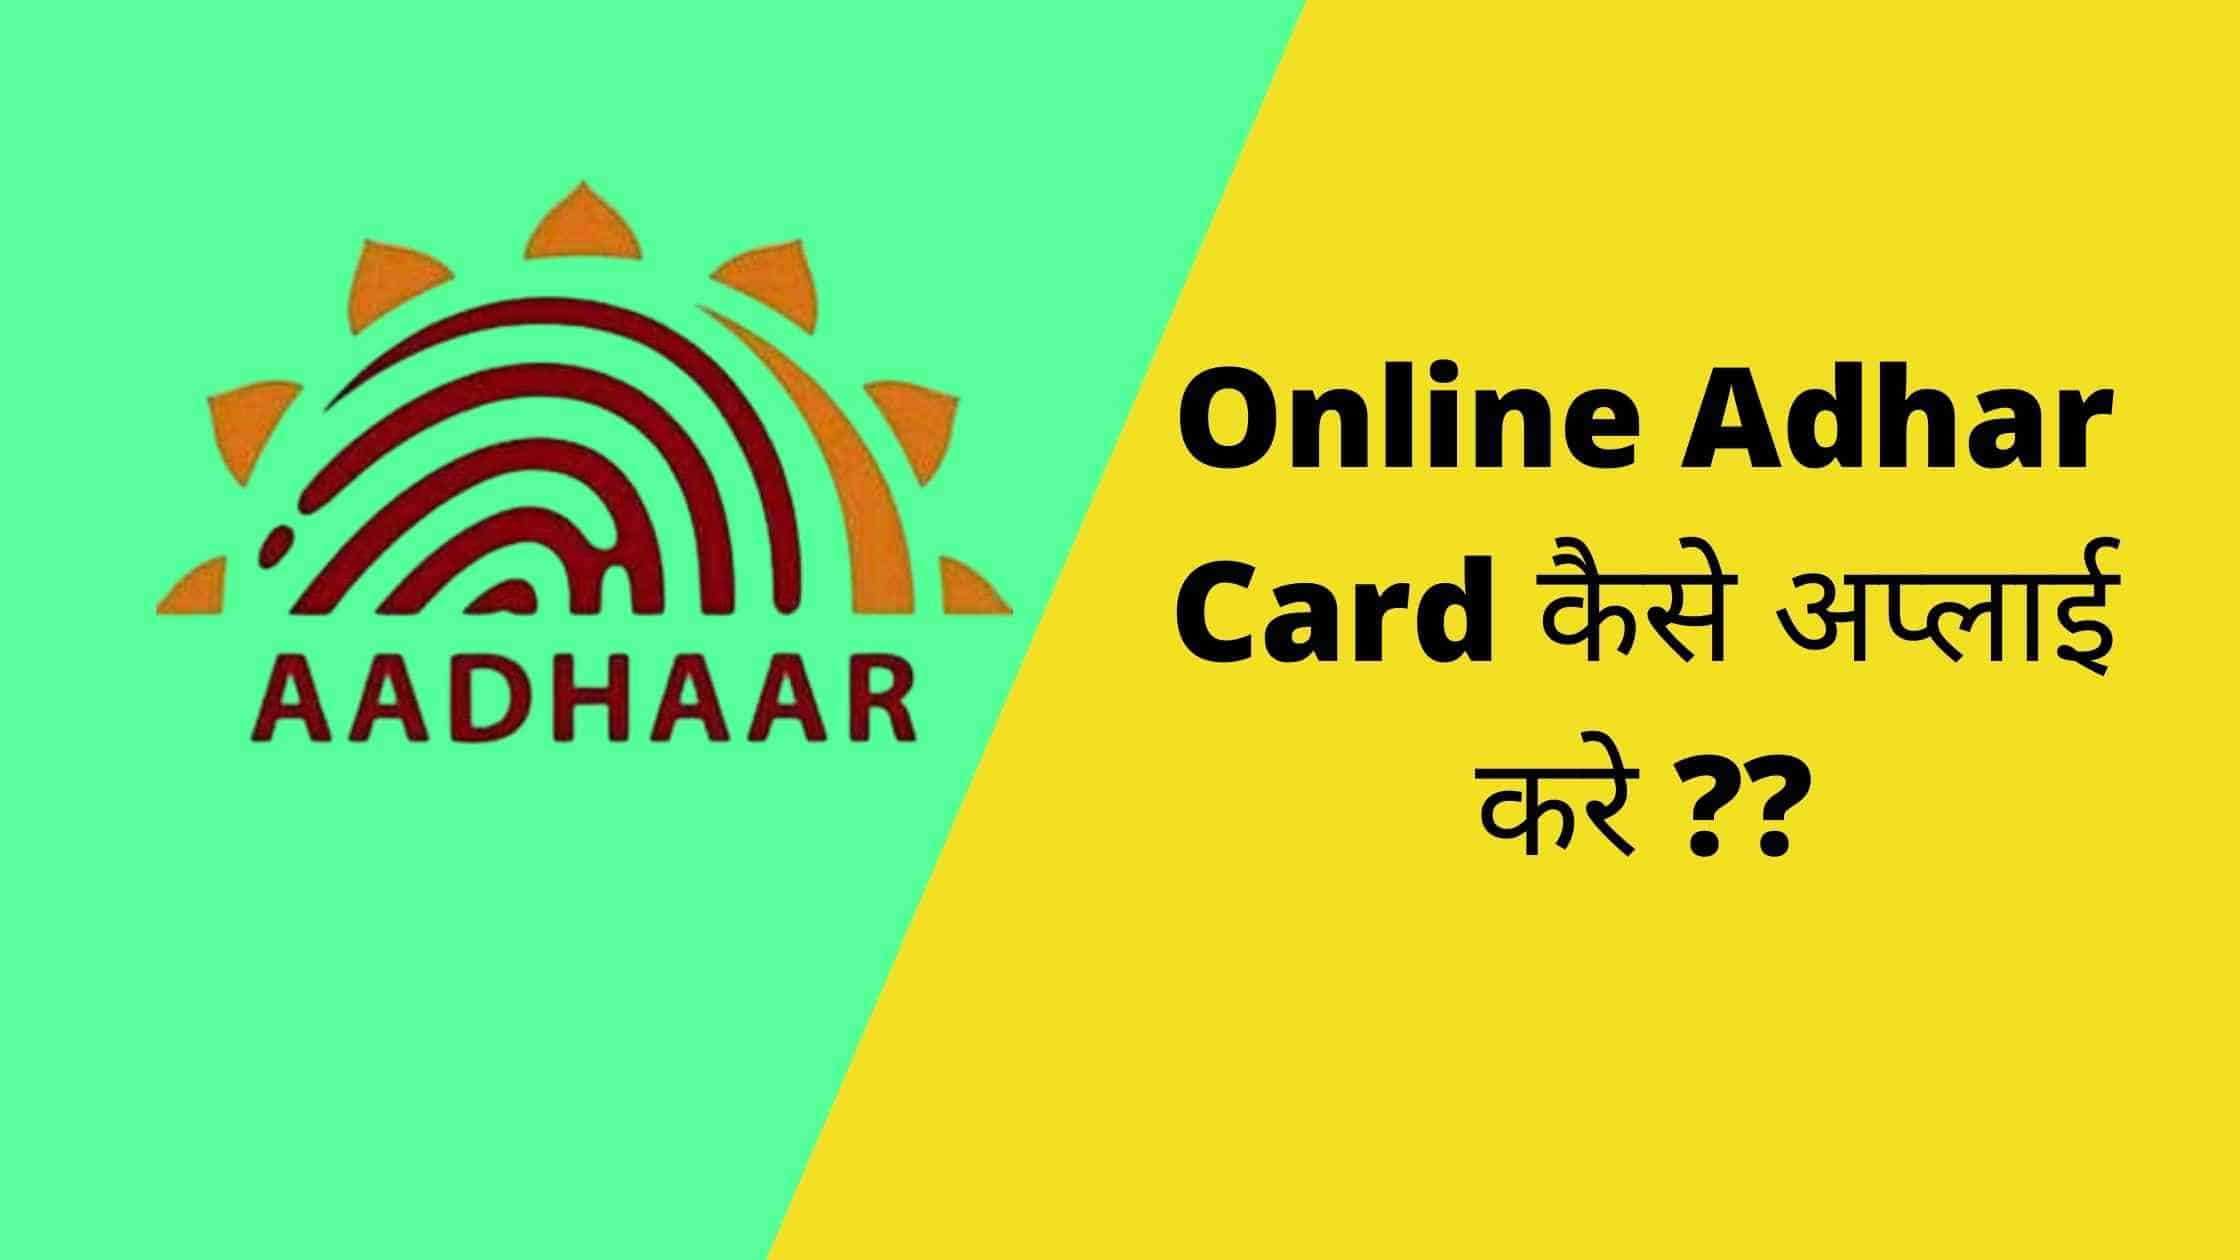 Online Adhar Card kaise apply kare